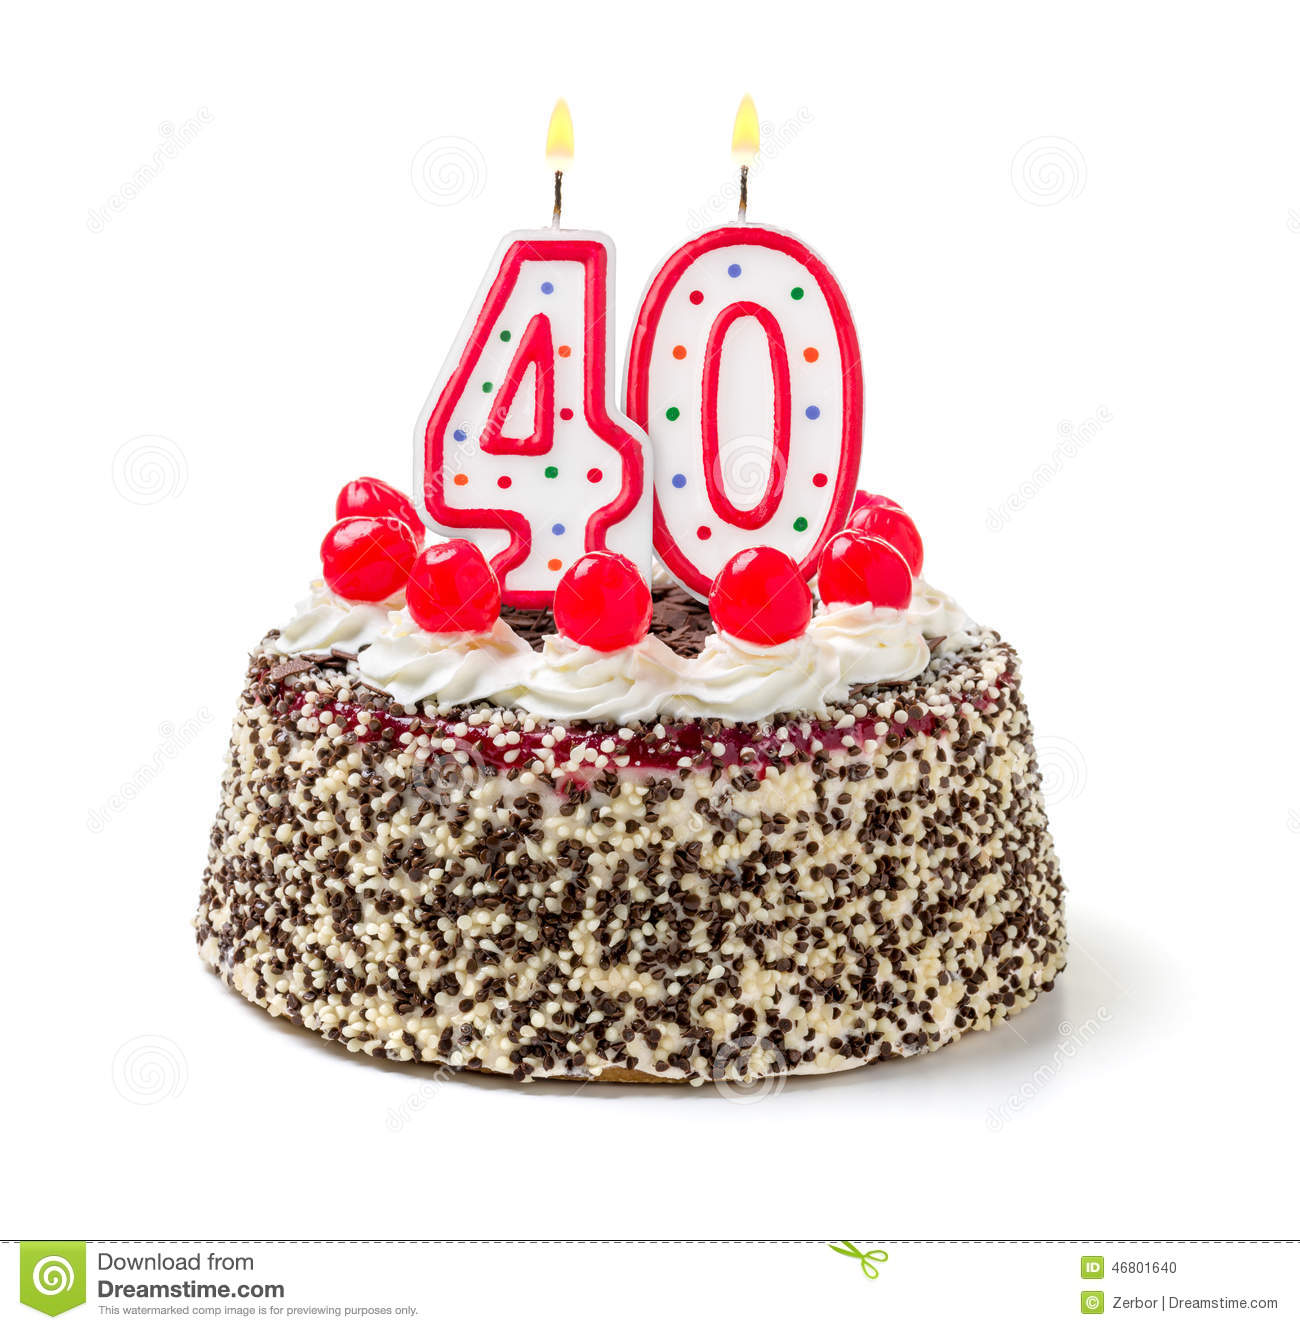 Cake With Burning Candle Number 40 Stock Photo Image Of Frosting